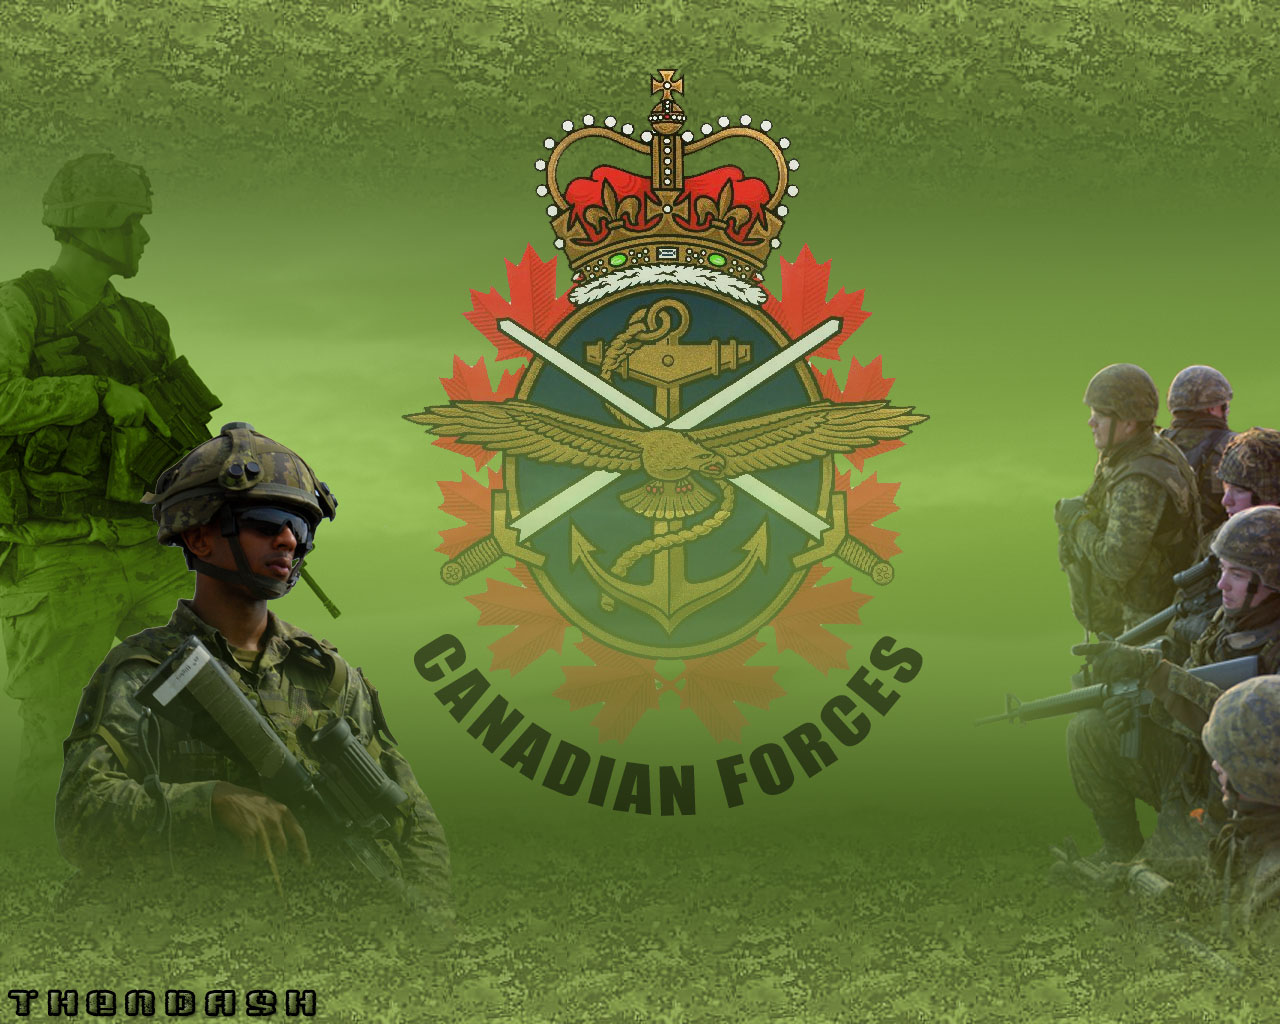 Canadian Forces Wallpaper 1280x1024